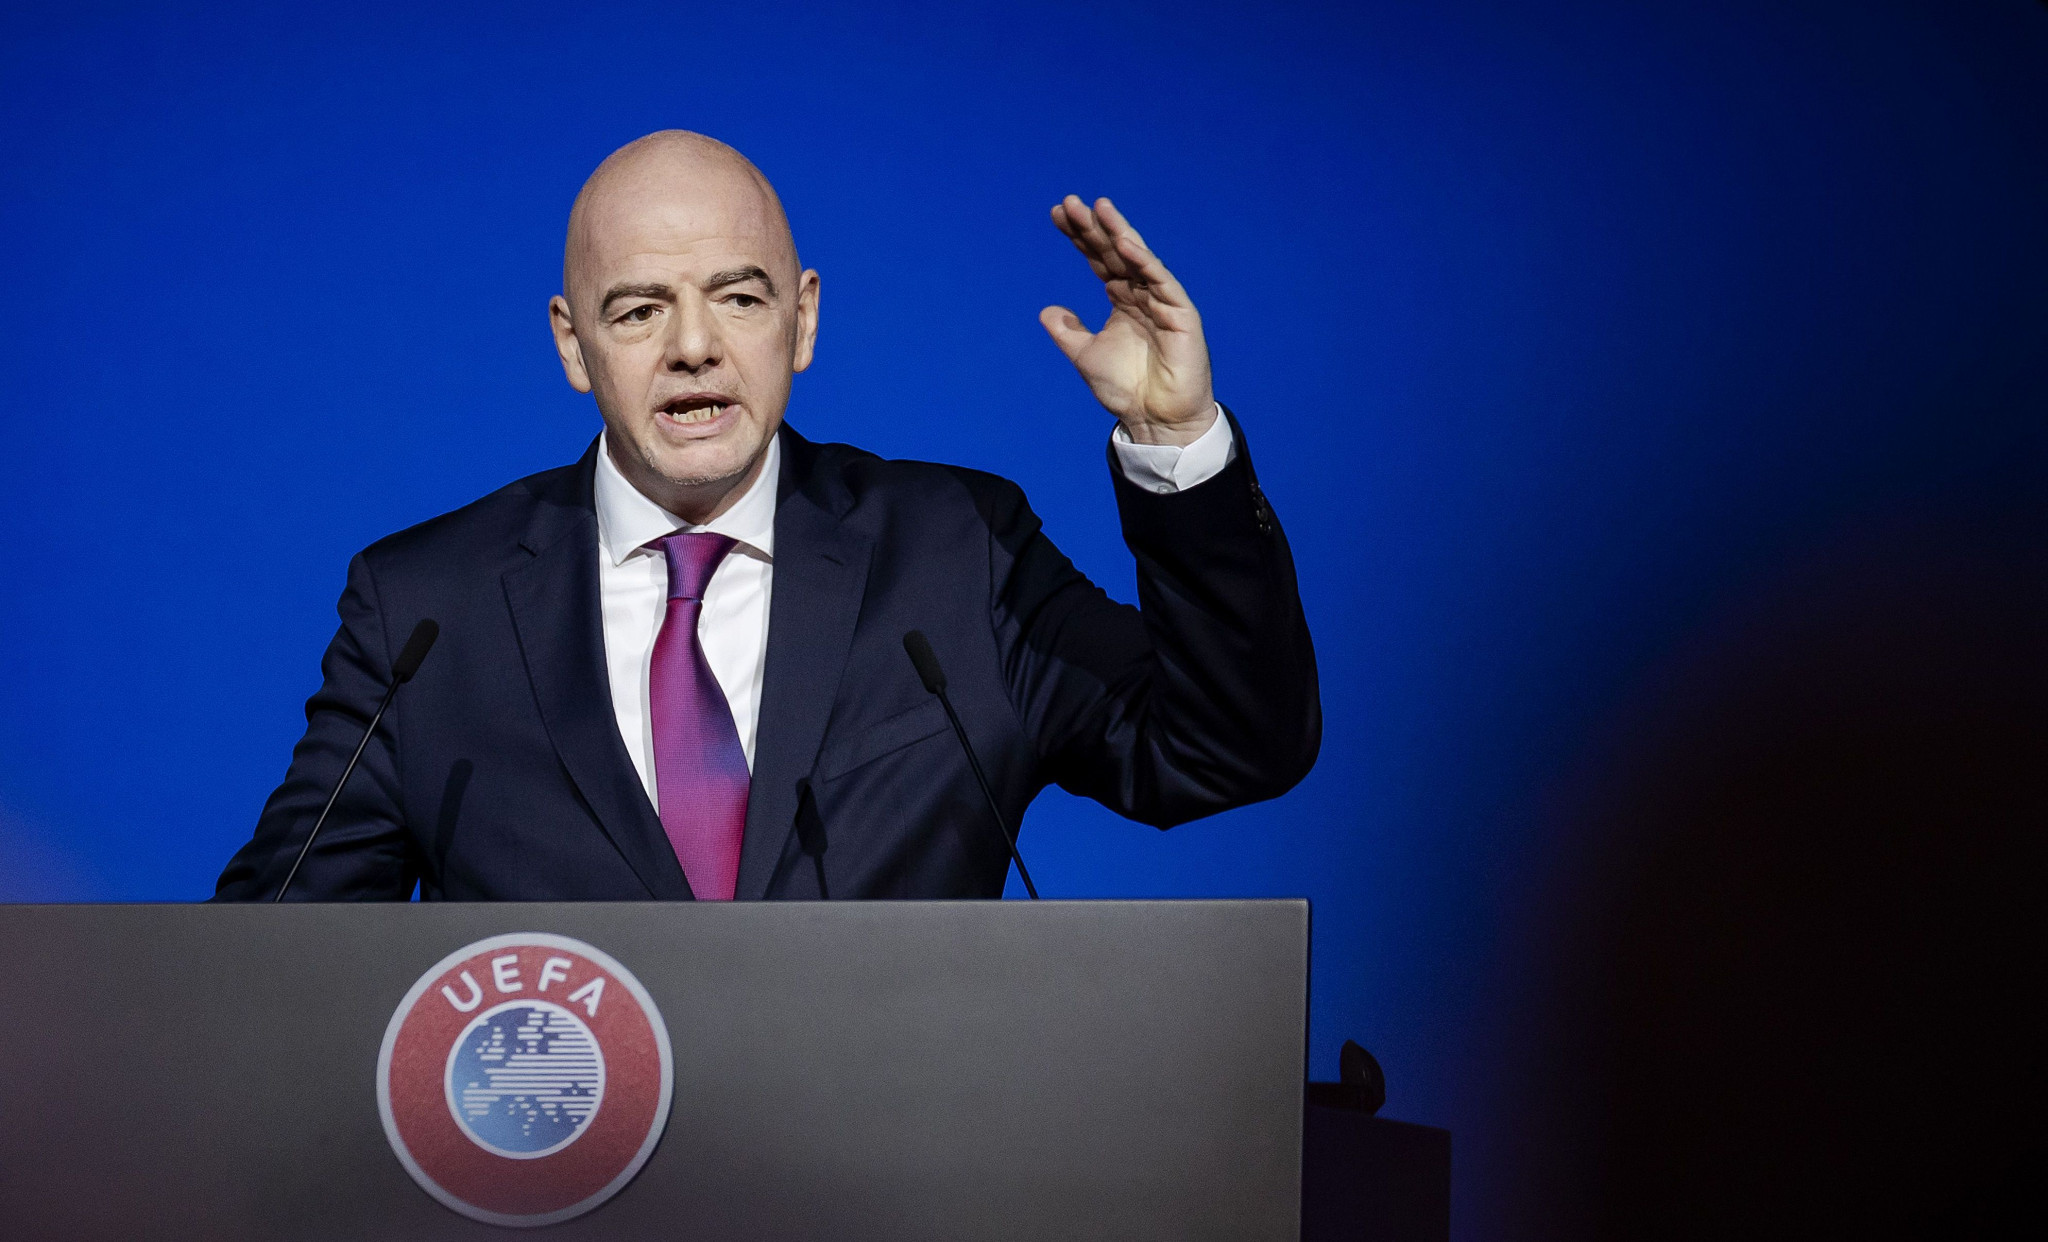 FIFA President Gianni Infantino urged caution over the coronavirus outbreak ©Getty Images